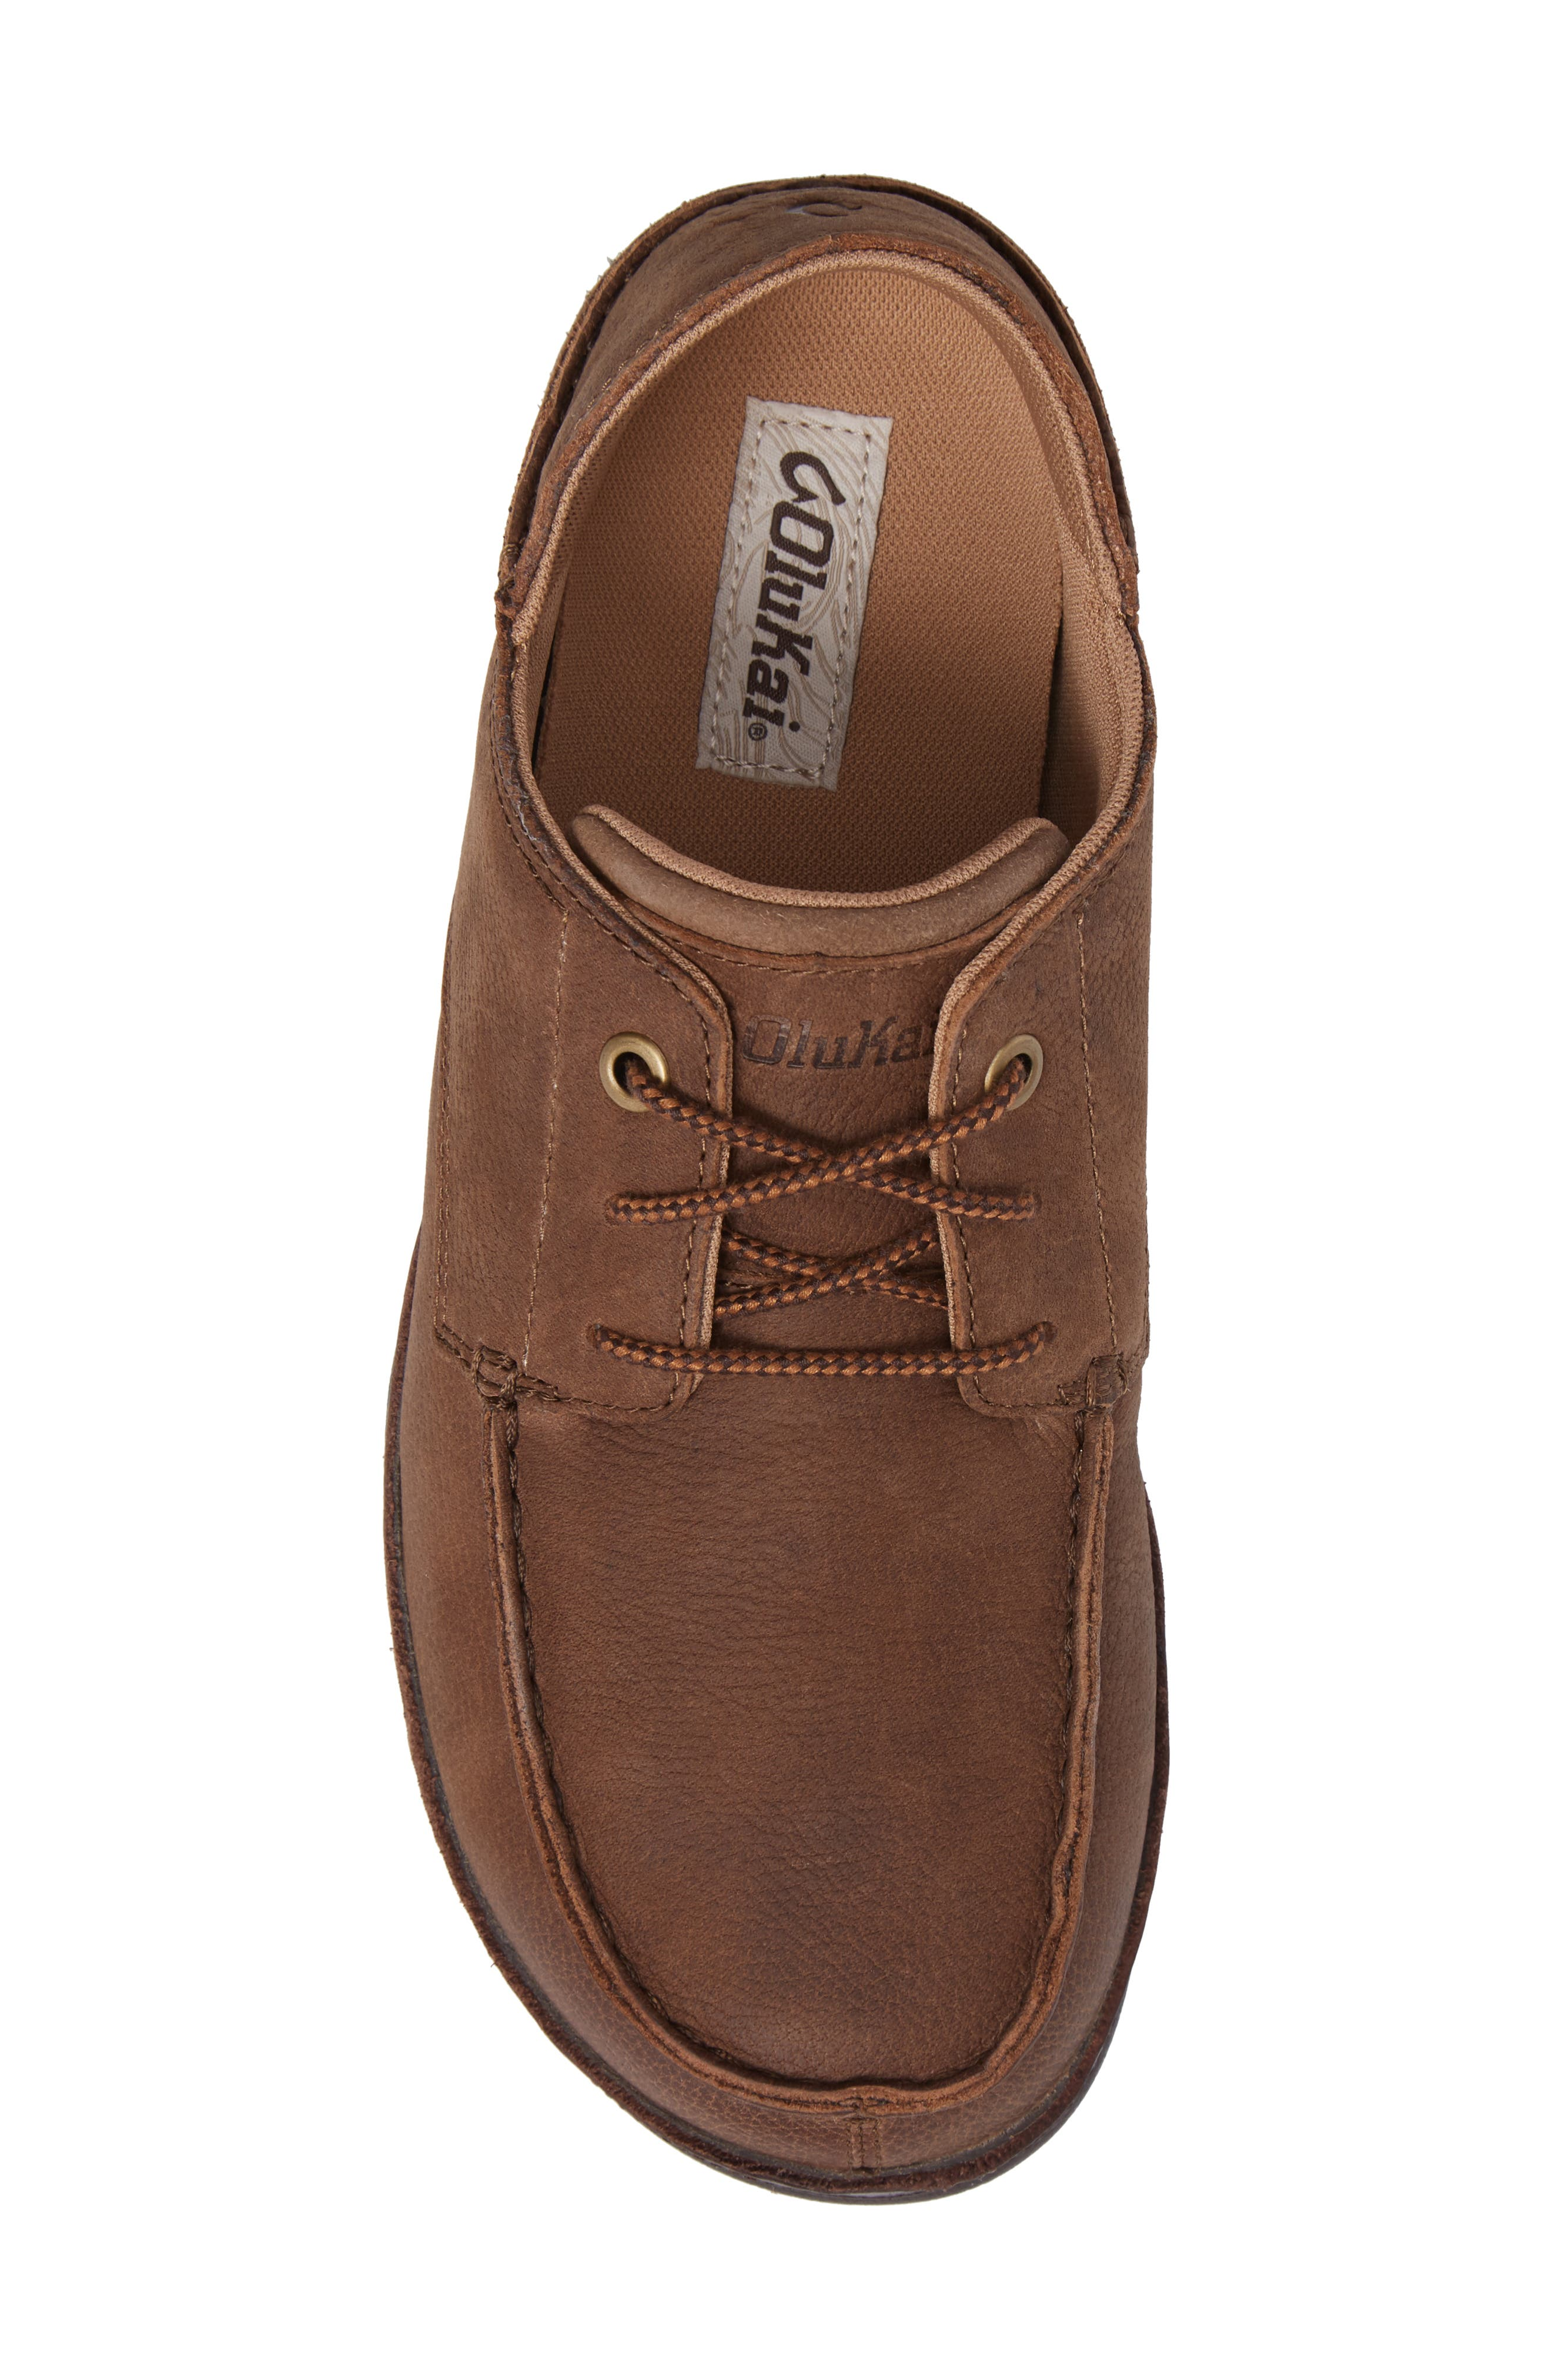 Hamakua Poko Moc Toe Derby,                             Alternate thumbnail 5, color,                             Ray/ Dark Wood Leather